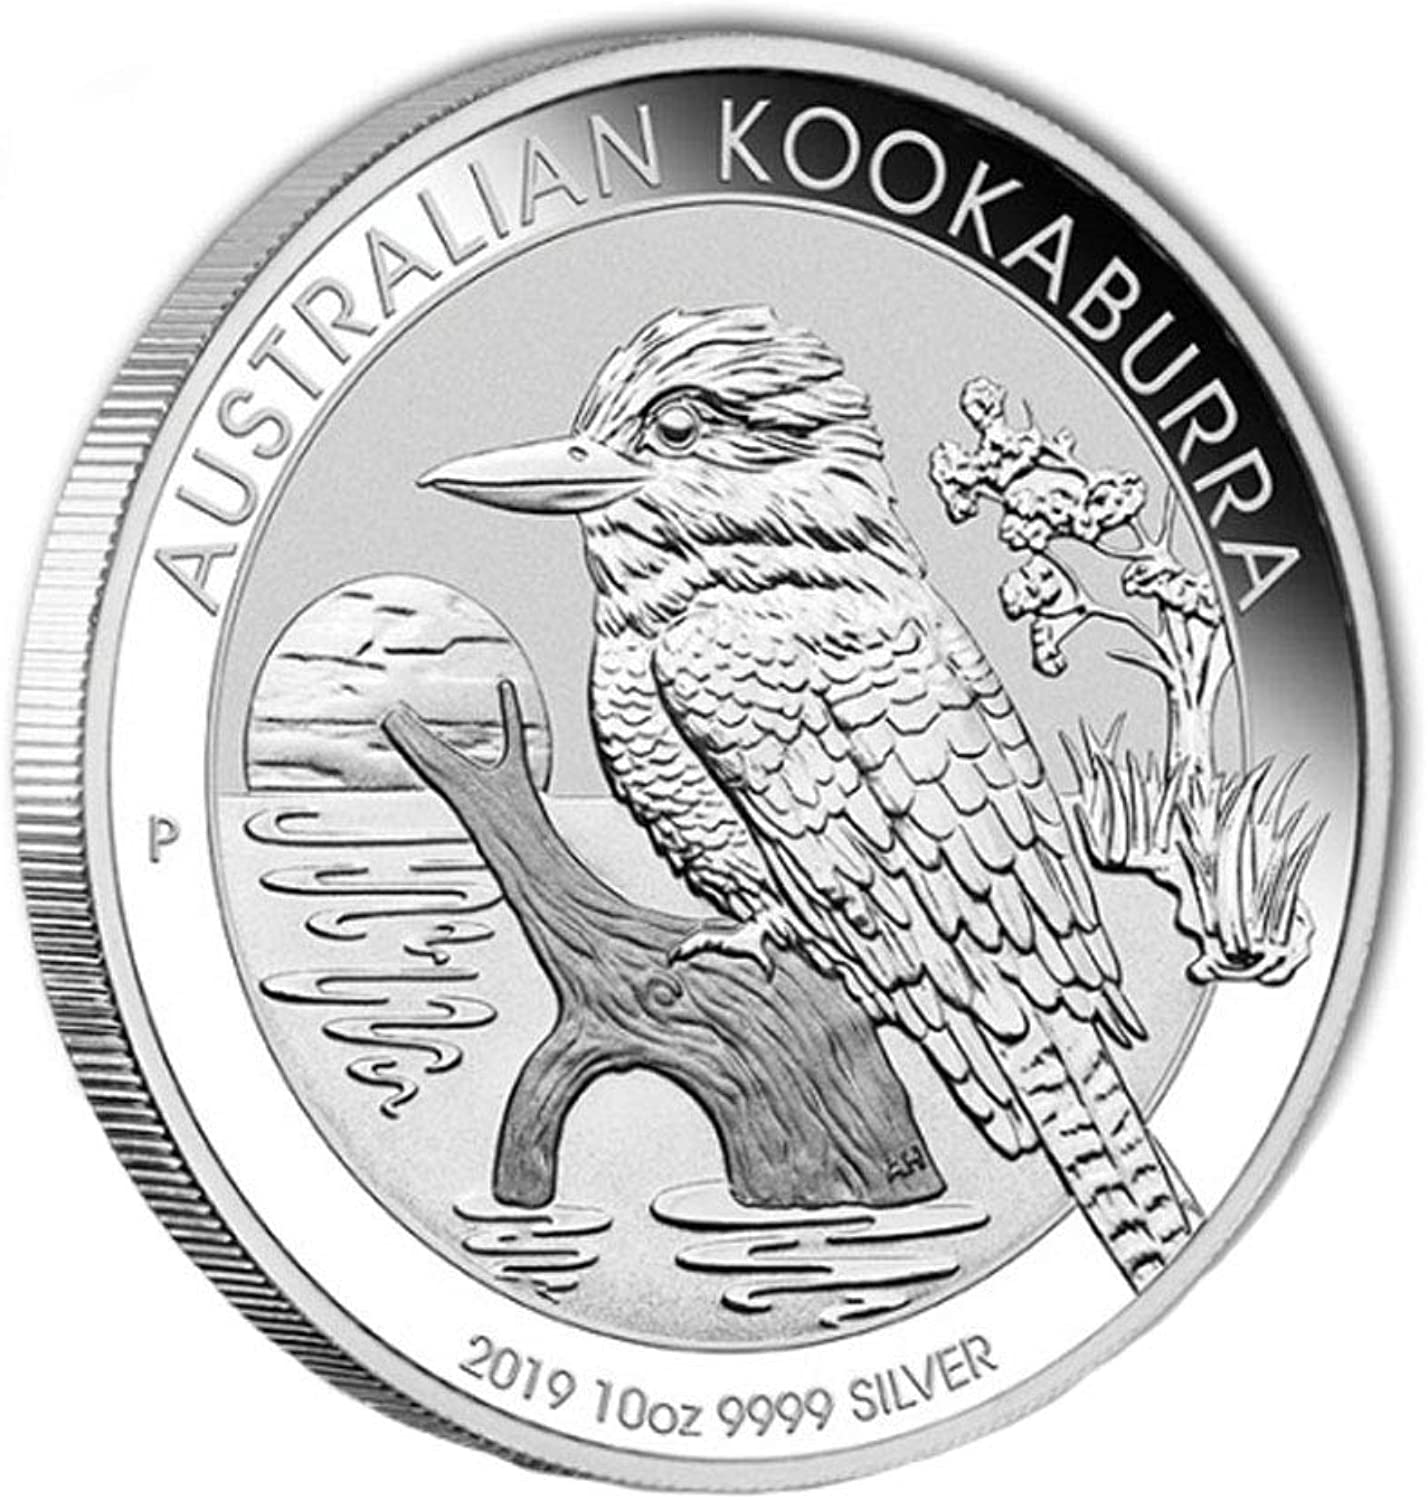 The Perth Mint Australien Kookaburra 10 oz Silbermünze 2019